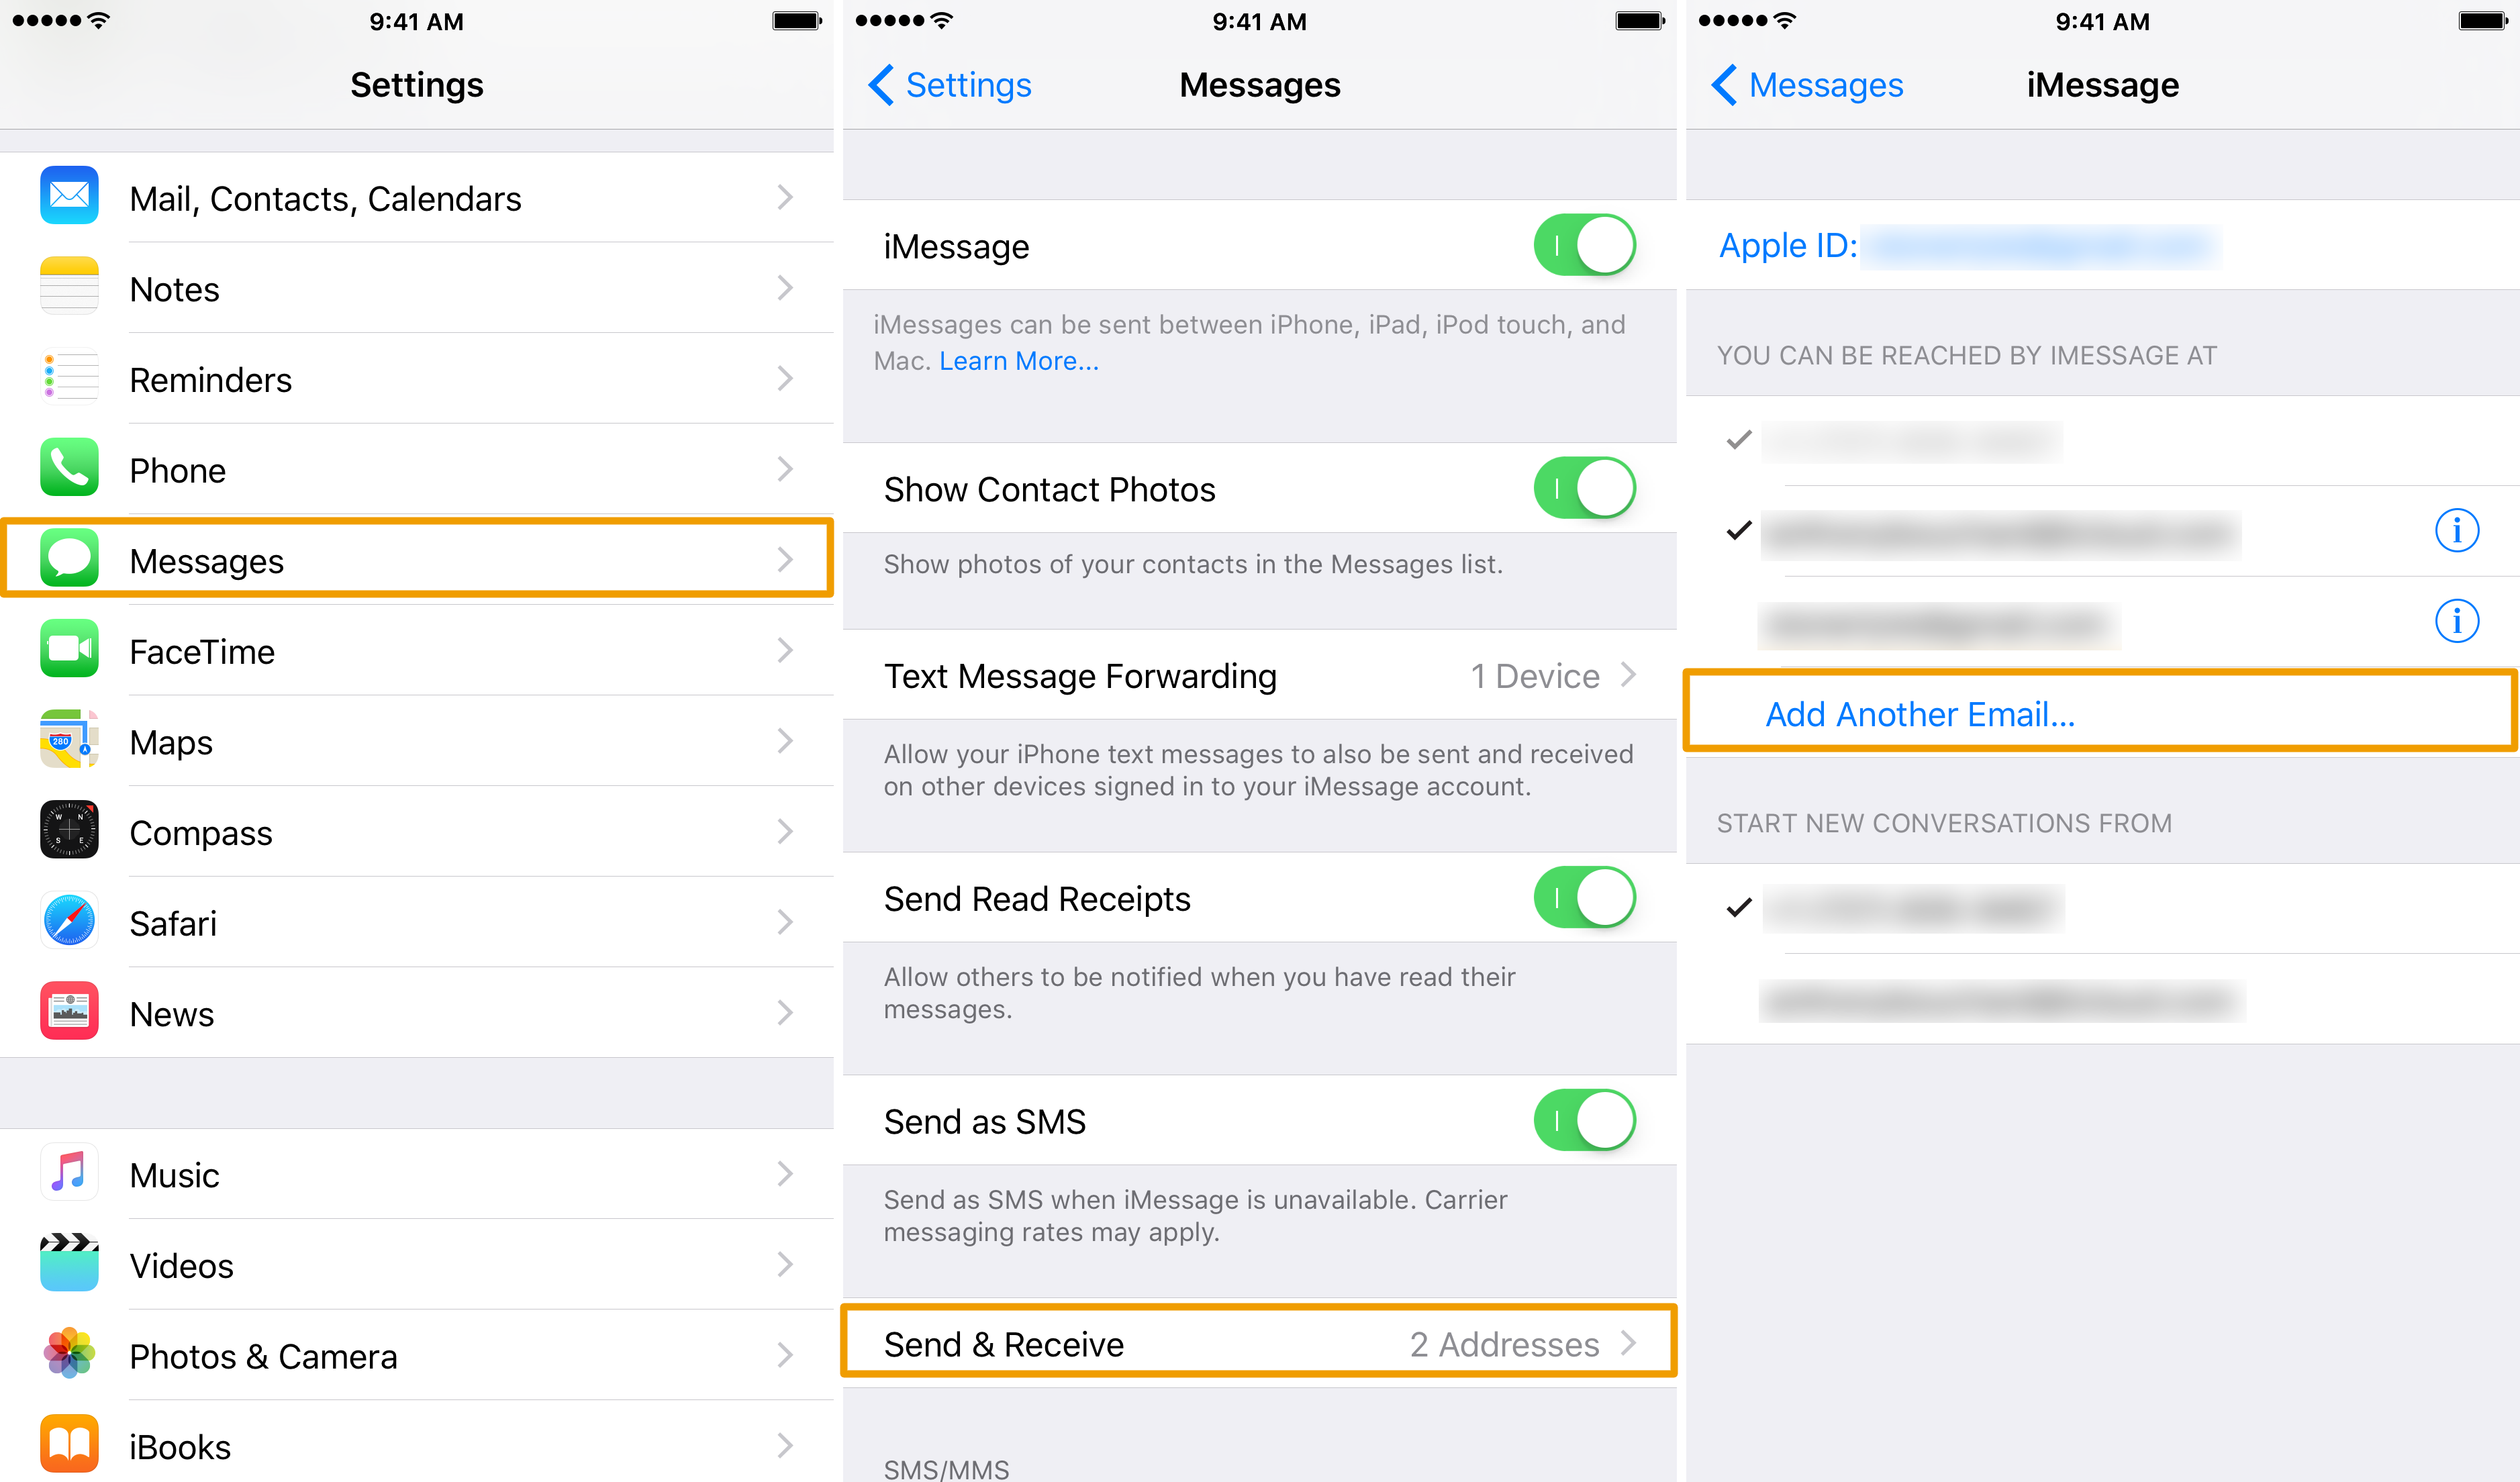 Adding a new email address to iMessage in iOS